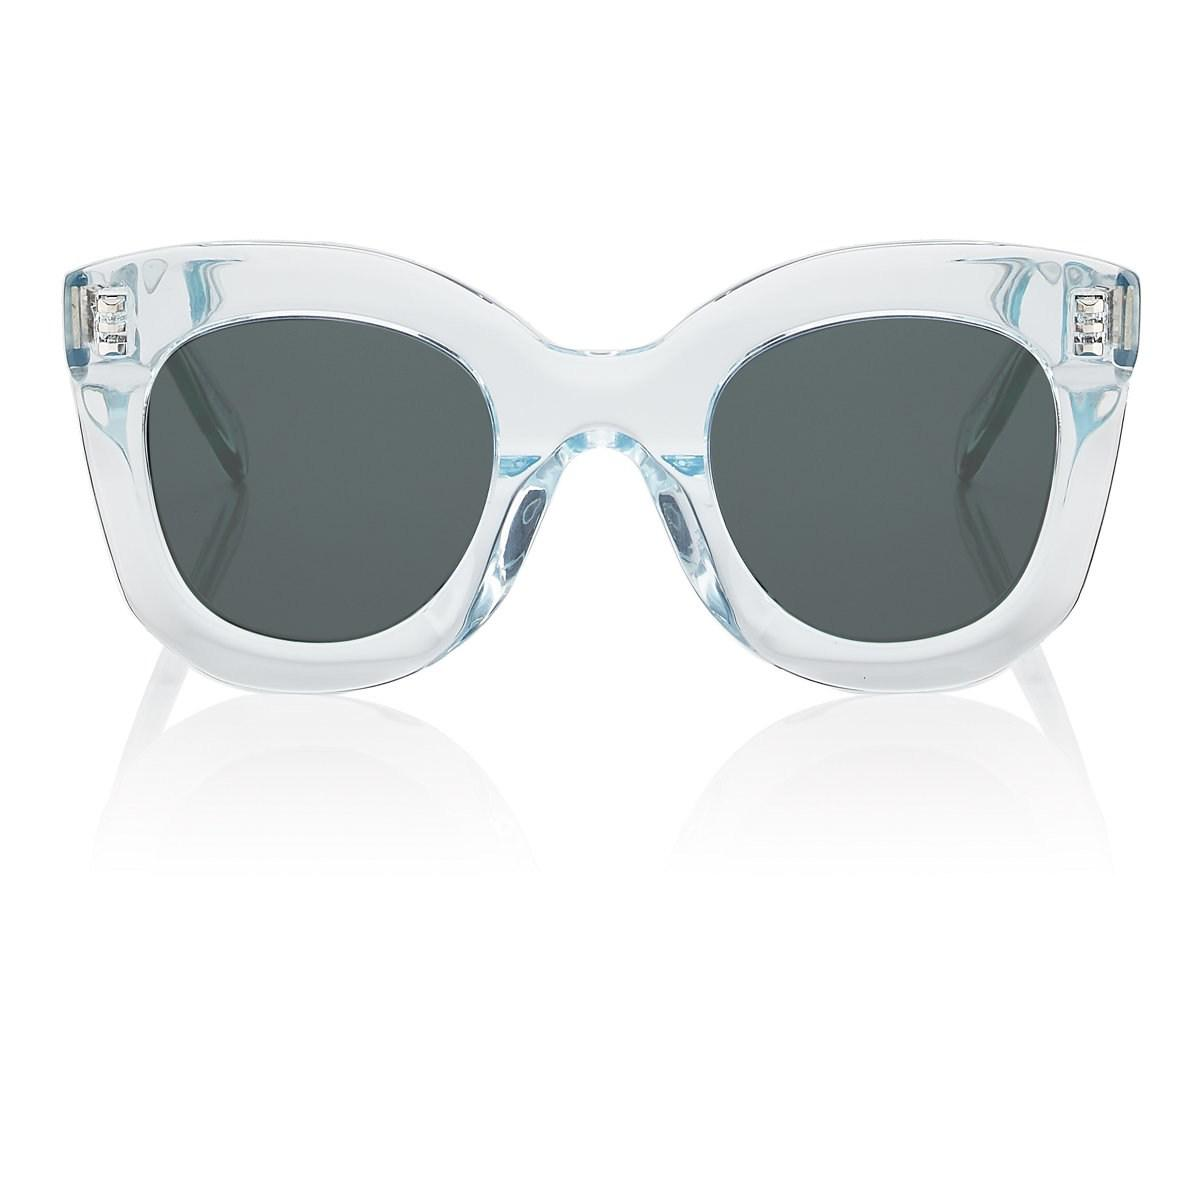 c7e398e0a75c7 Céline Butterfly Sunglasses in Blue - Lyst